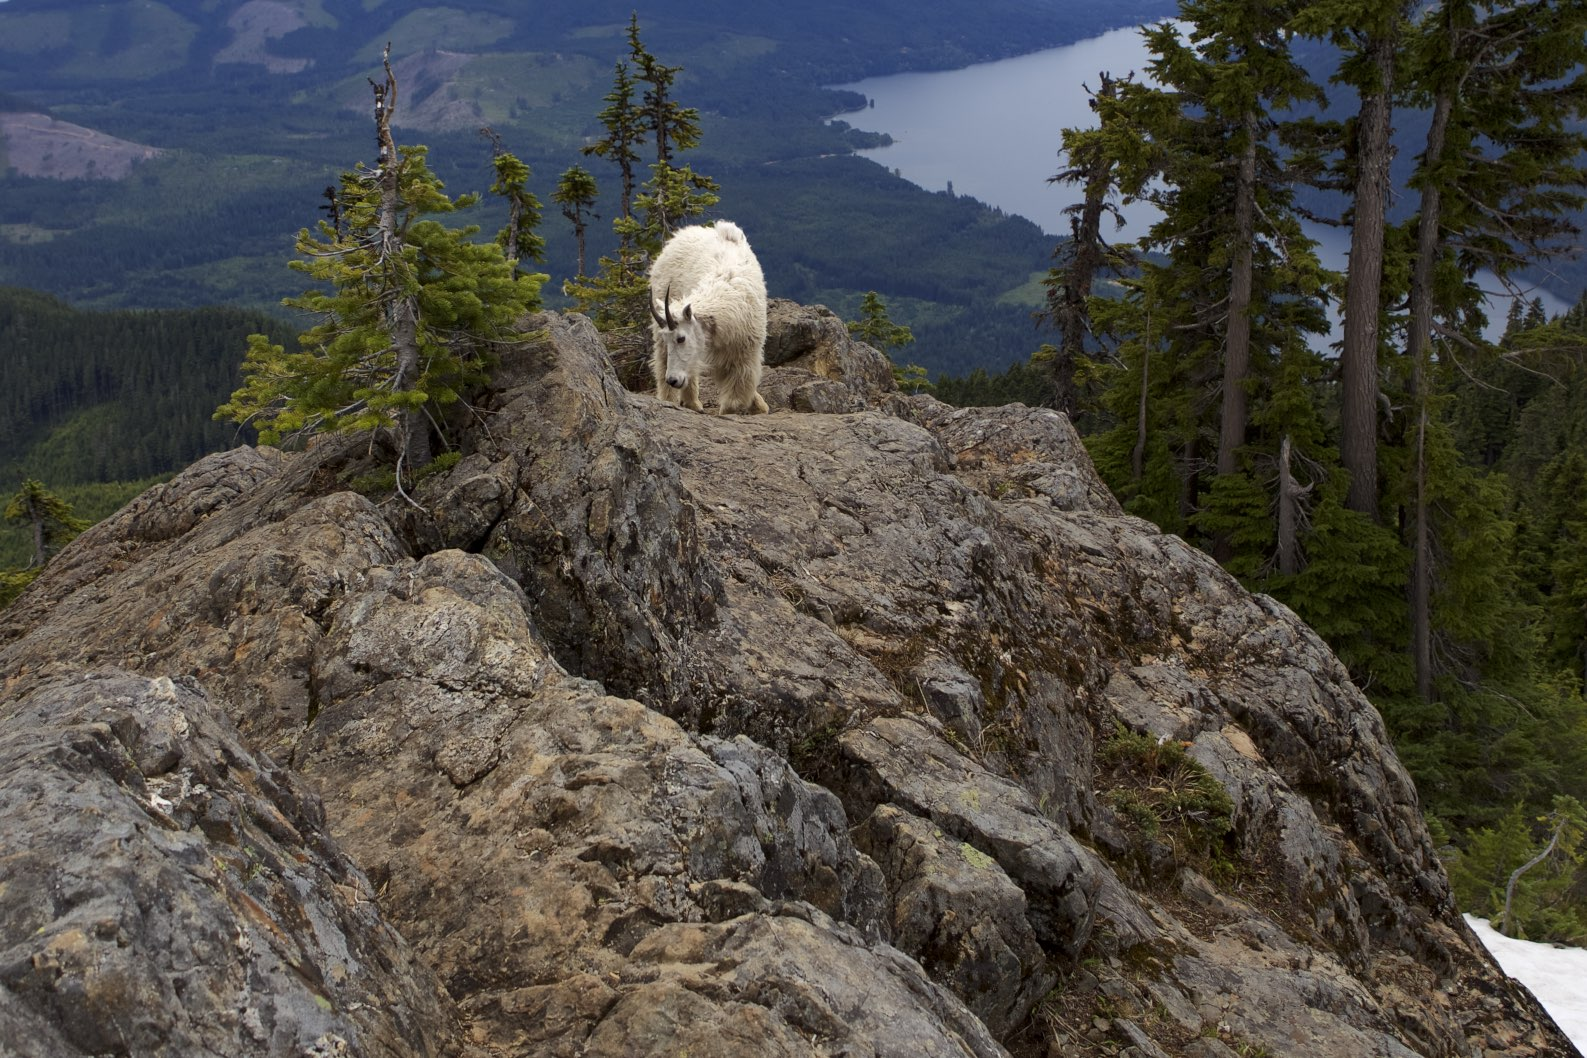 Image of a goat on a cliff.